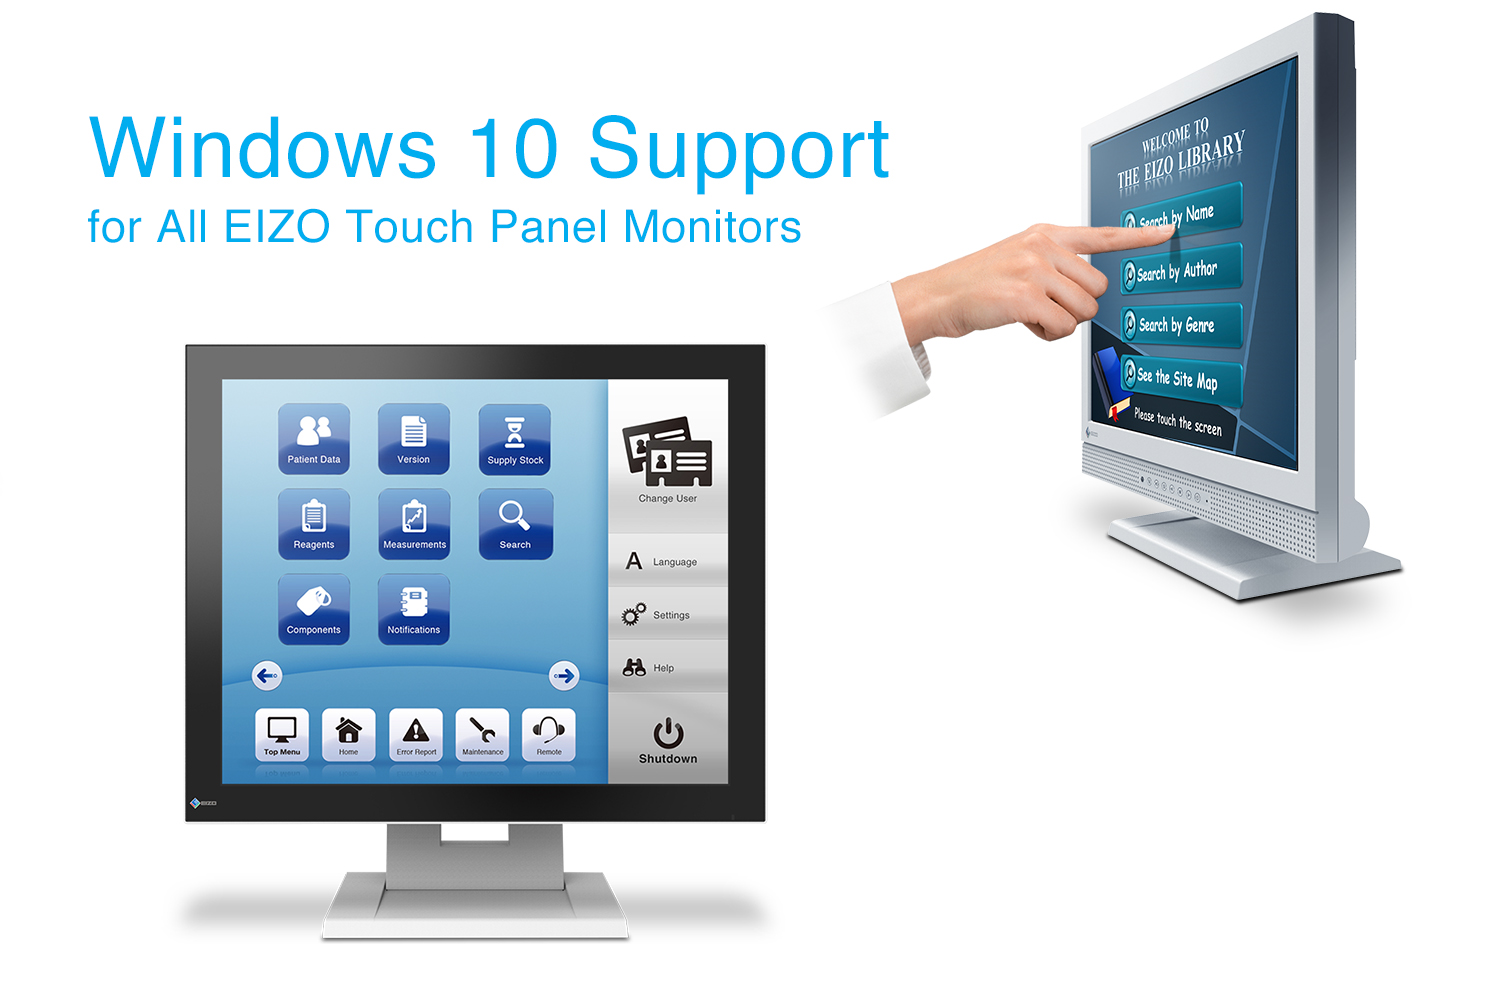 ... Touch Panel Monitors, Download